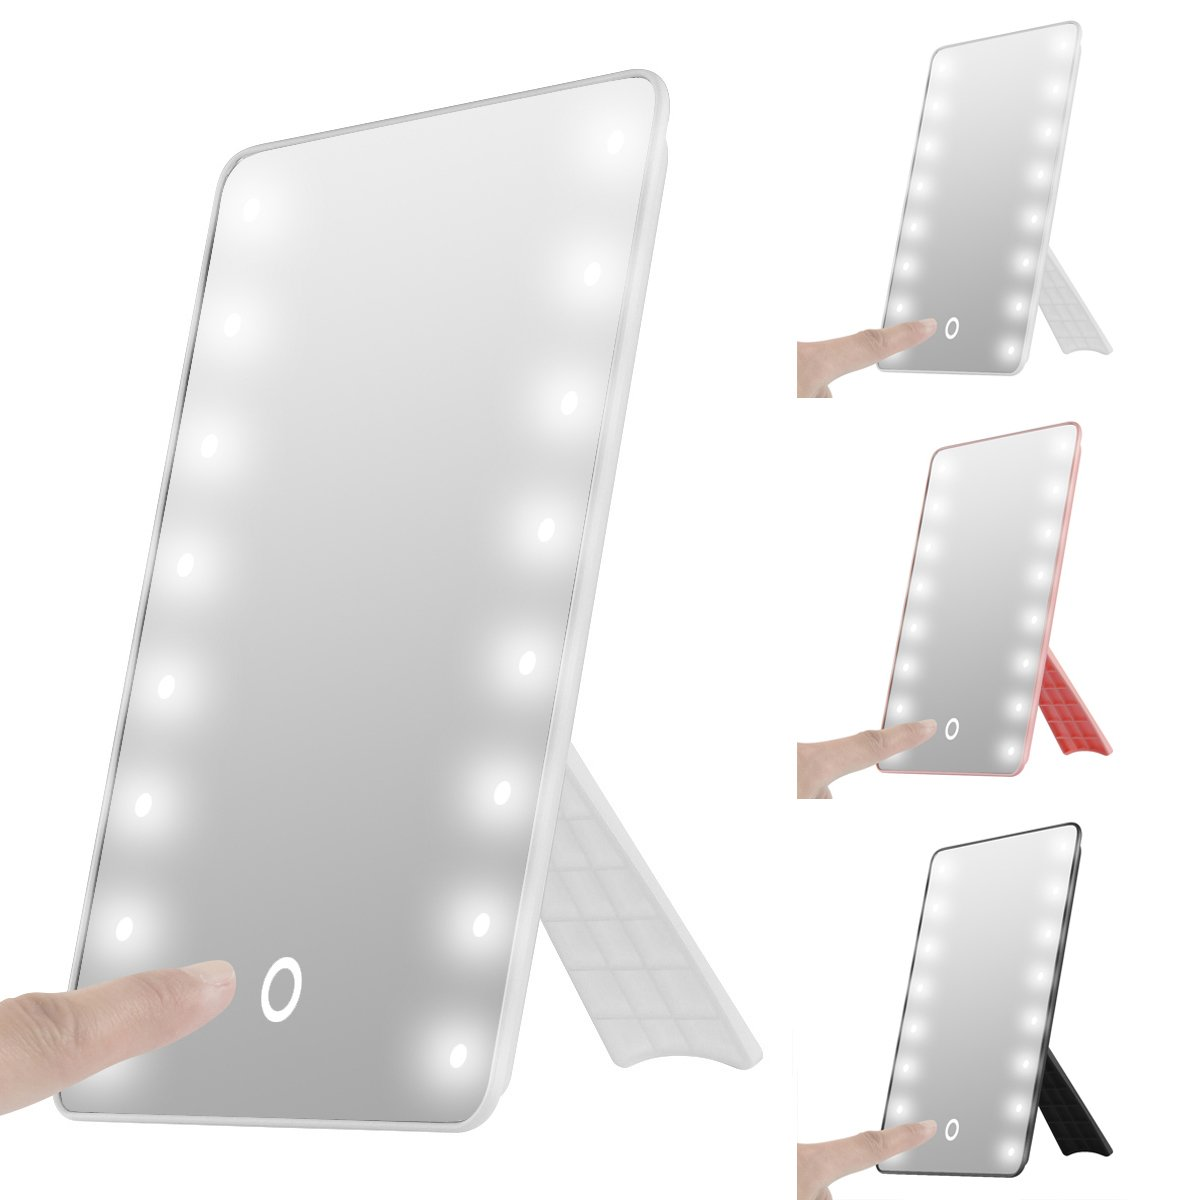 oenbopo Foldable LED Lighted Vanity Mirror with Light, Smart Touch Kickstand 16LED Lighted Vanity Mirror Makeup Cosmetic Countertop Cordless Table Mirror Adjustable Brightness (White)